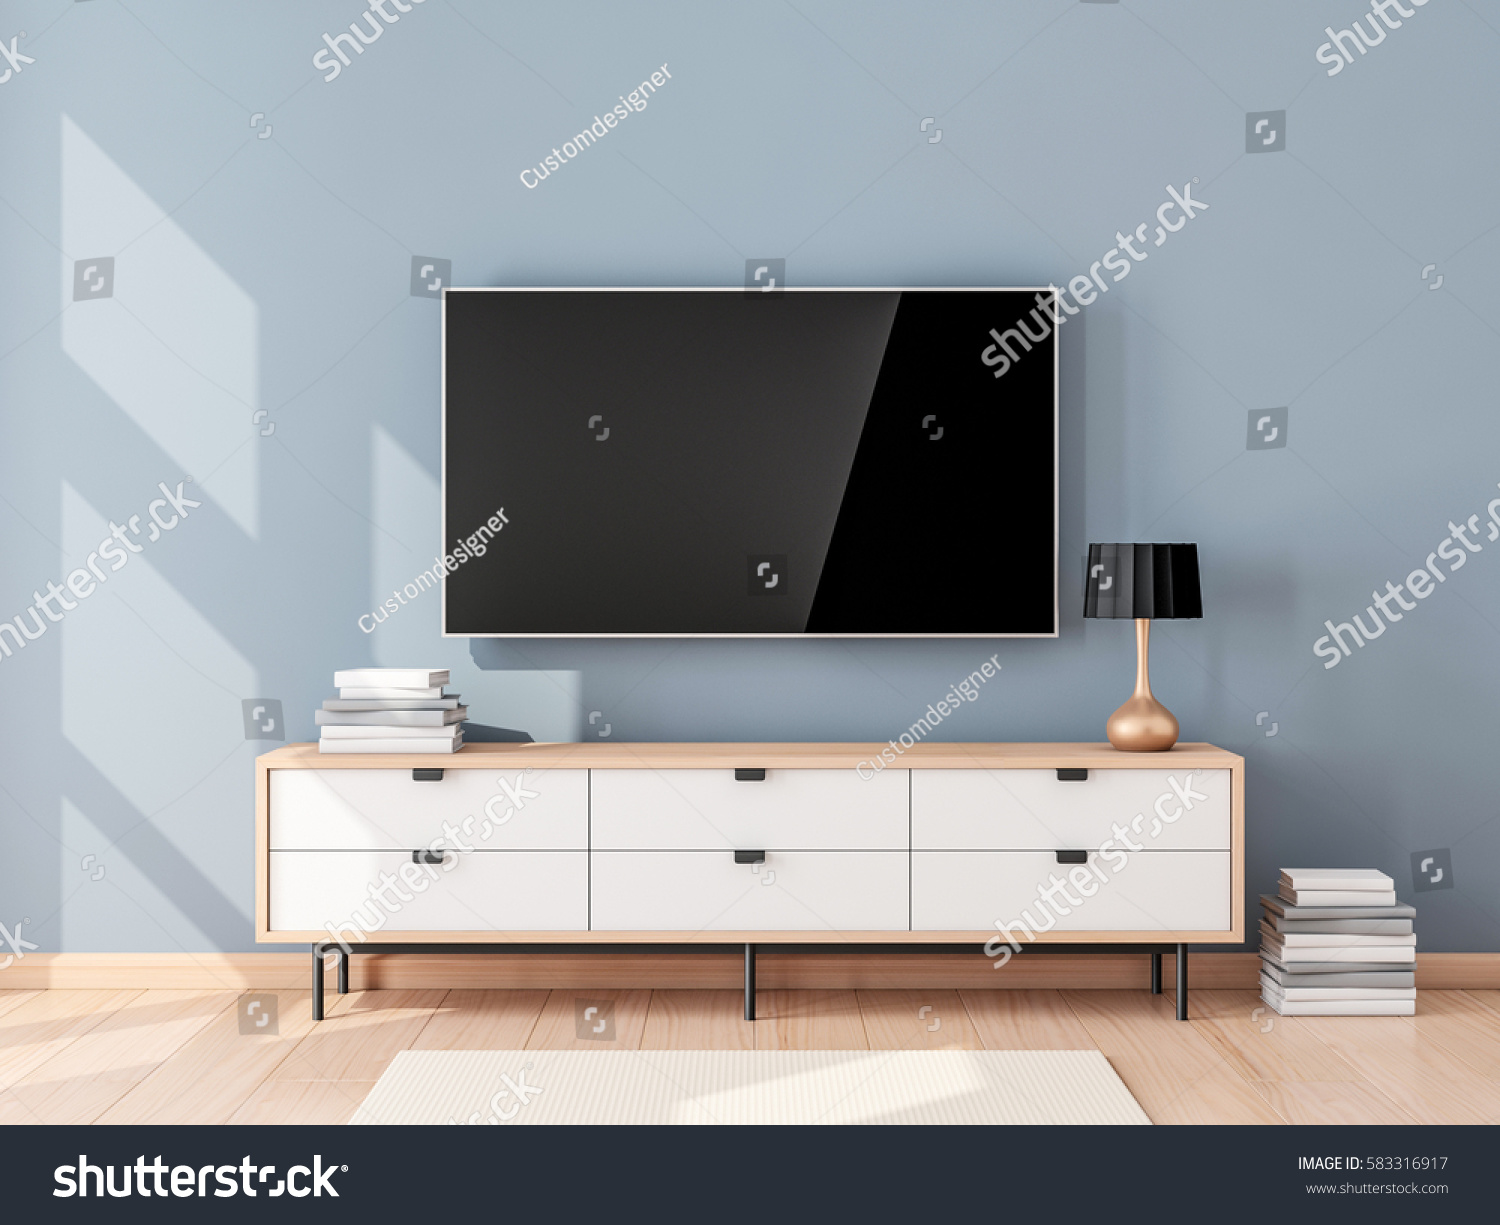 Smart Tv Mockup With Blank Screen Hanging On The Wall In Modern Living Room 3d